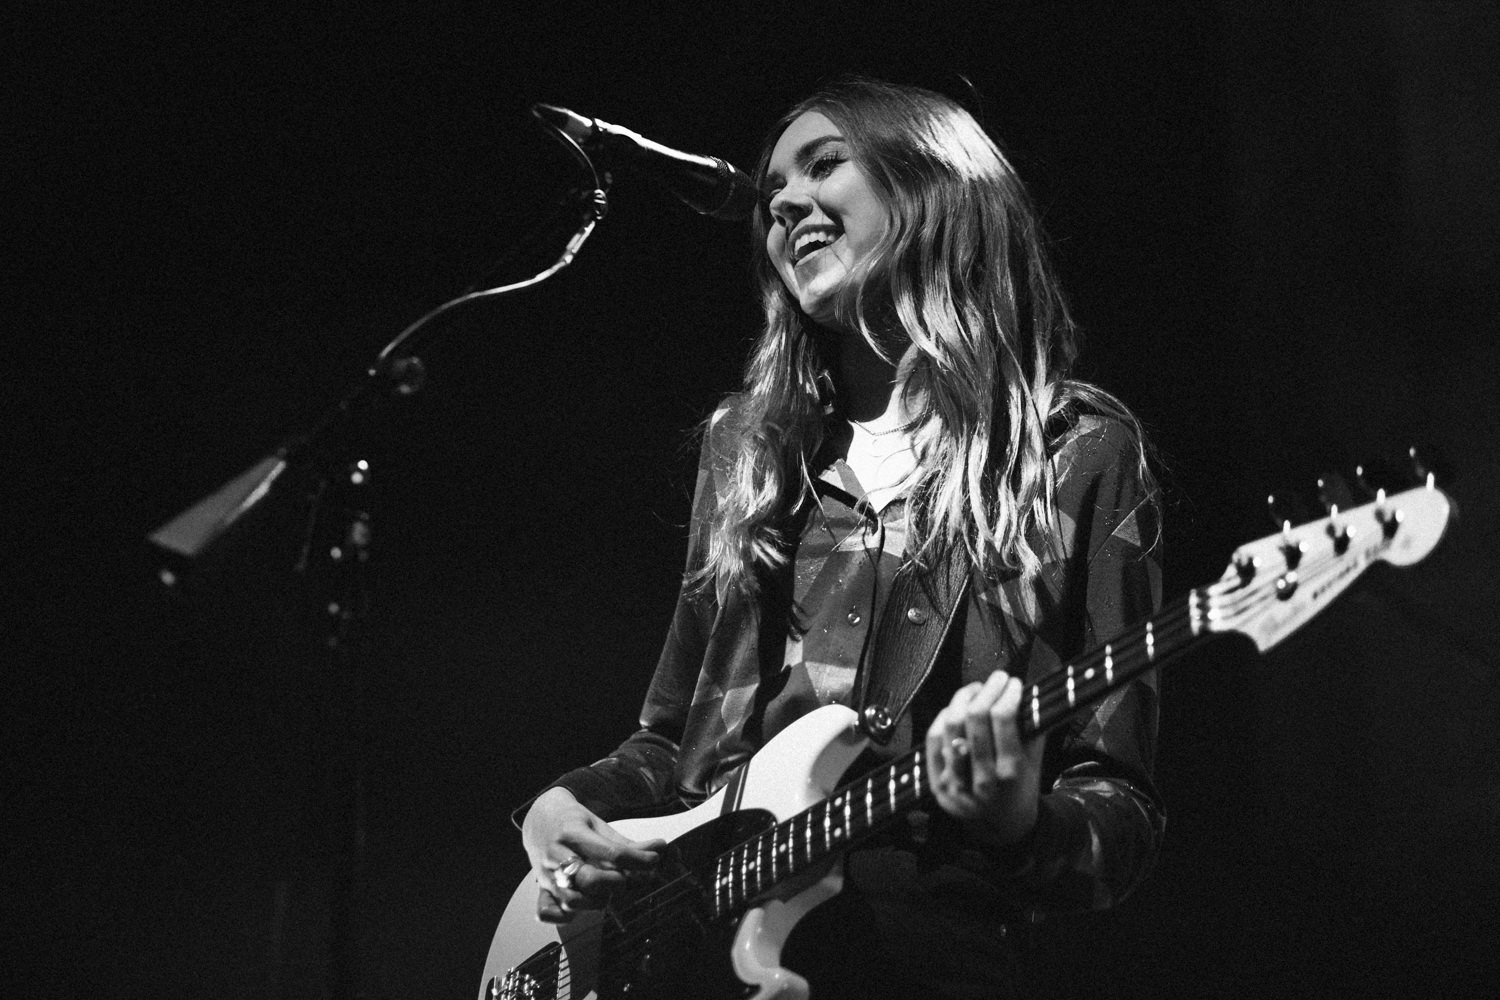 Johanna Söderberg First Aid Kit smiling Black and white